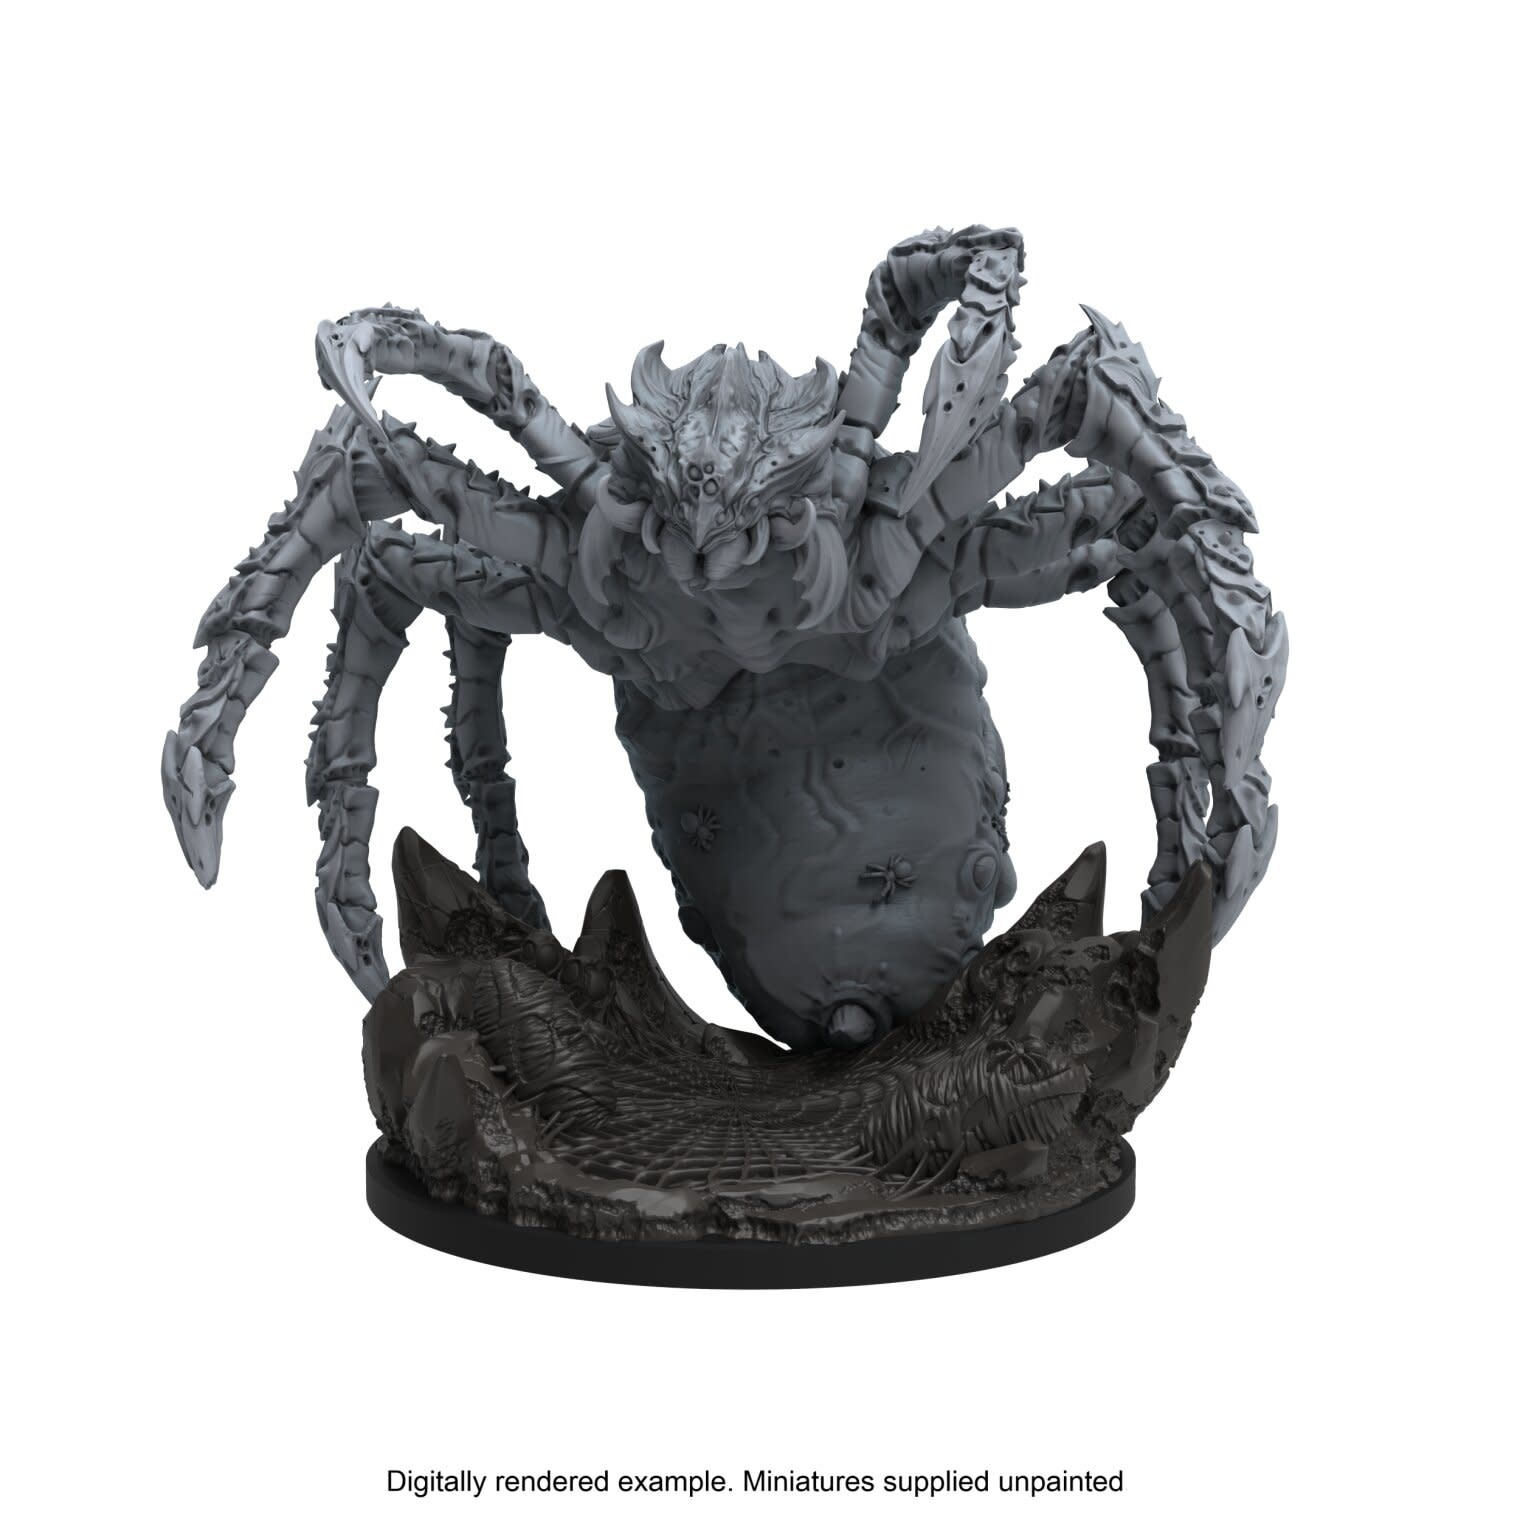 Epic Encounters: Web of the Tyrant for 5E